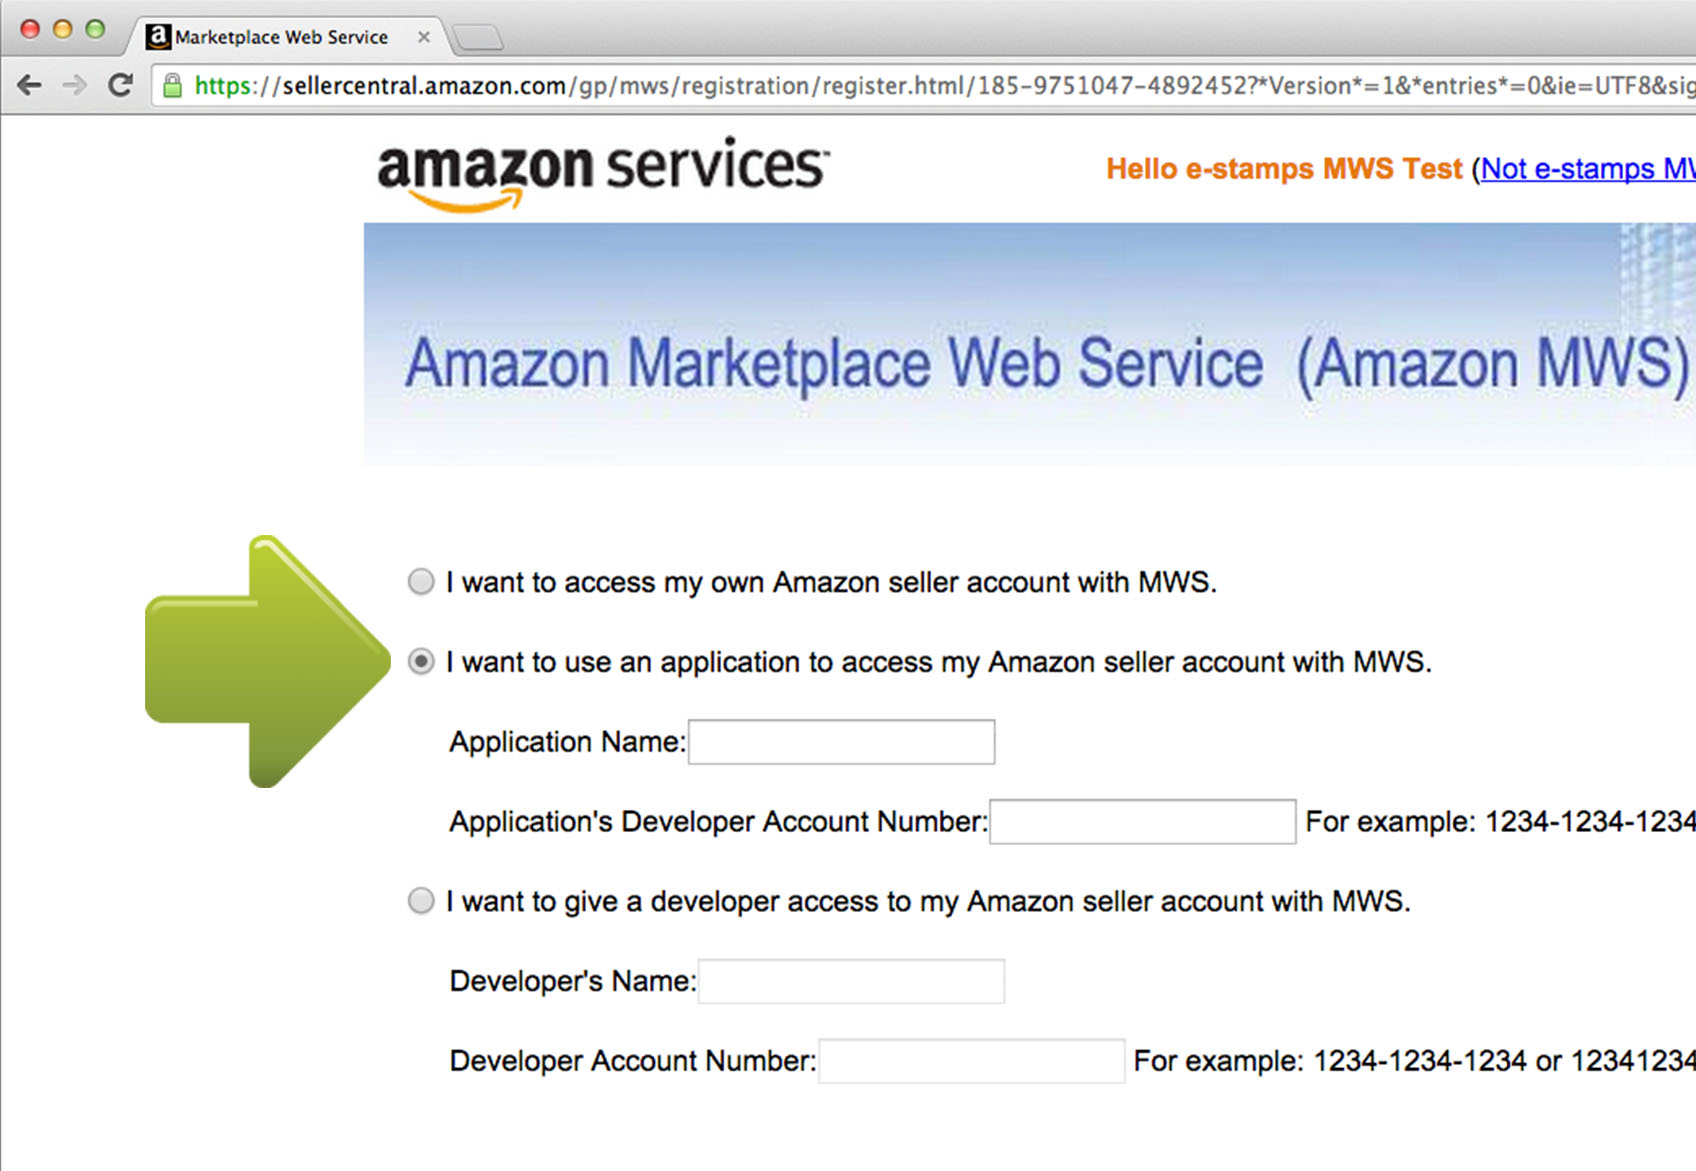 amazon seller account services